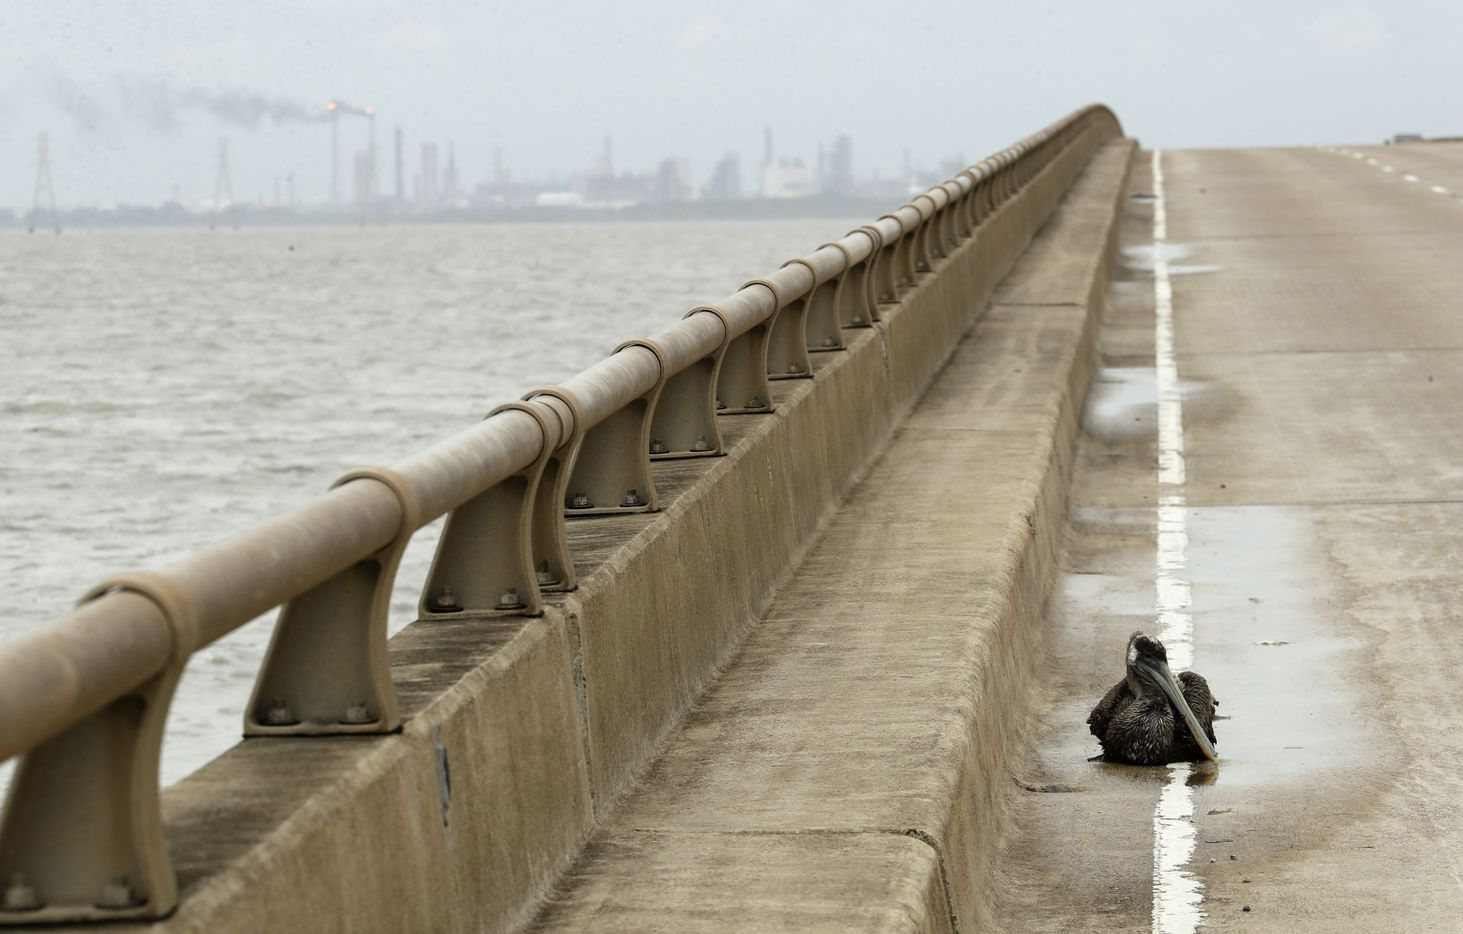 A pelican injured during Hurricane Harvey sits on a bridge Saturday, Aug. 26, 2017, in Port Lavaca, Texas, with an oil refinery in the background.